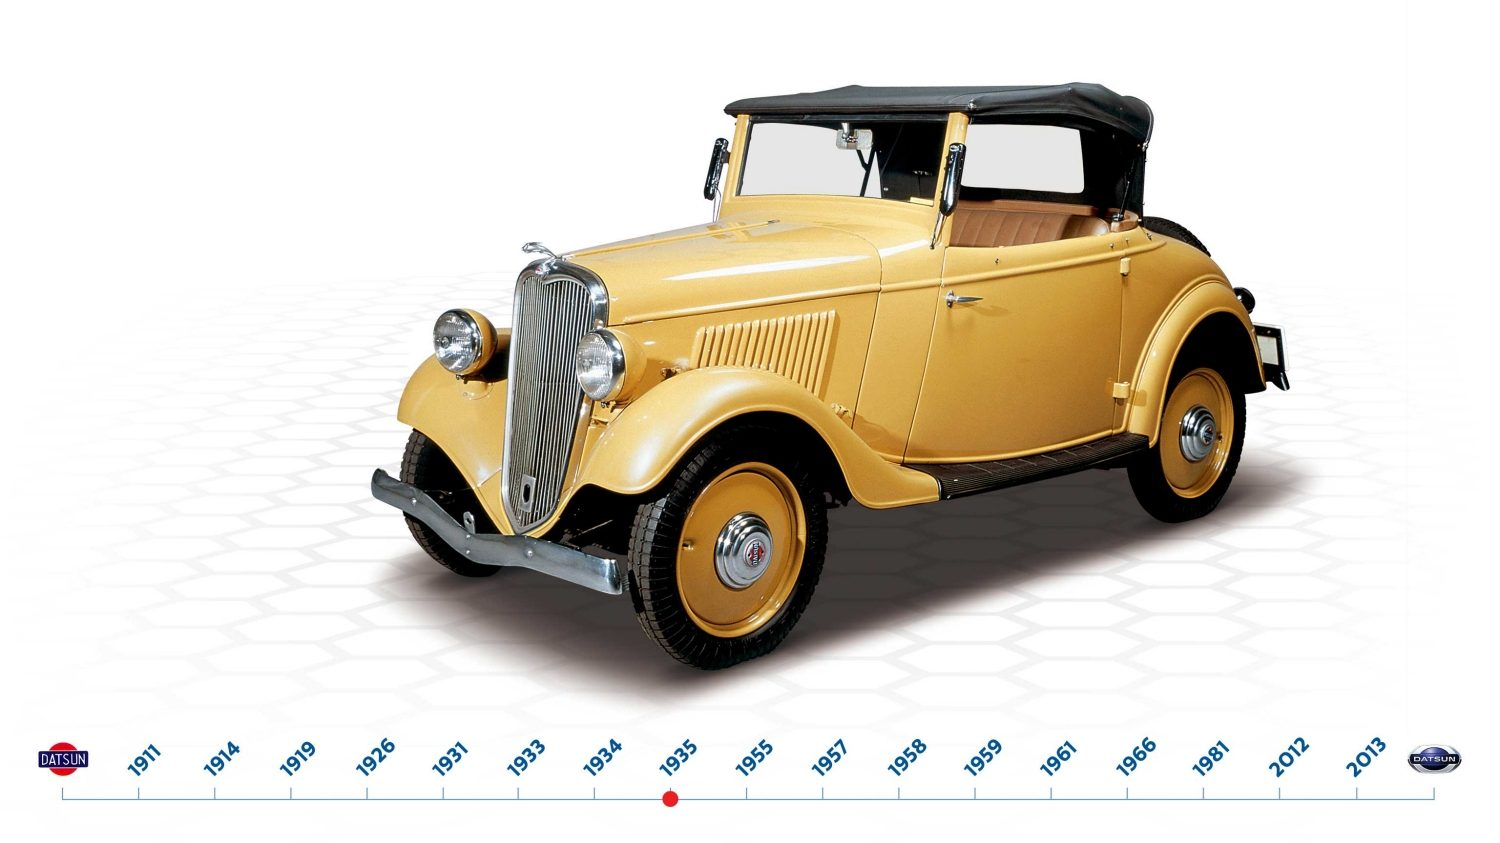 About Datsun | The History and Evolution of Datsun Cars